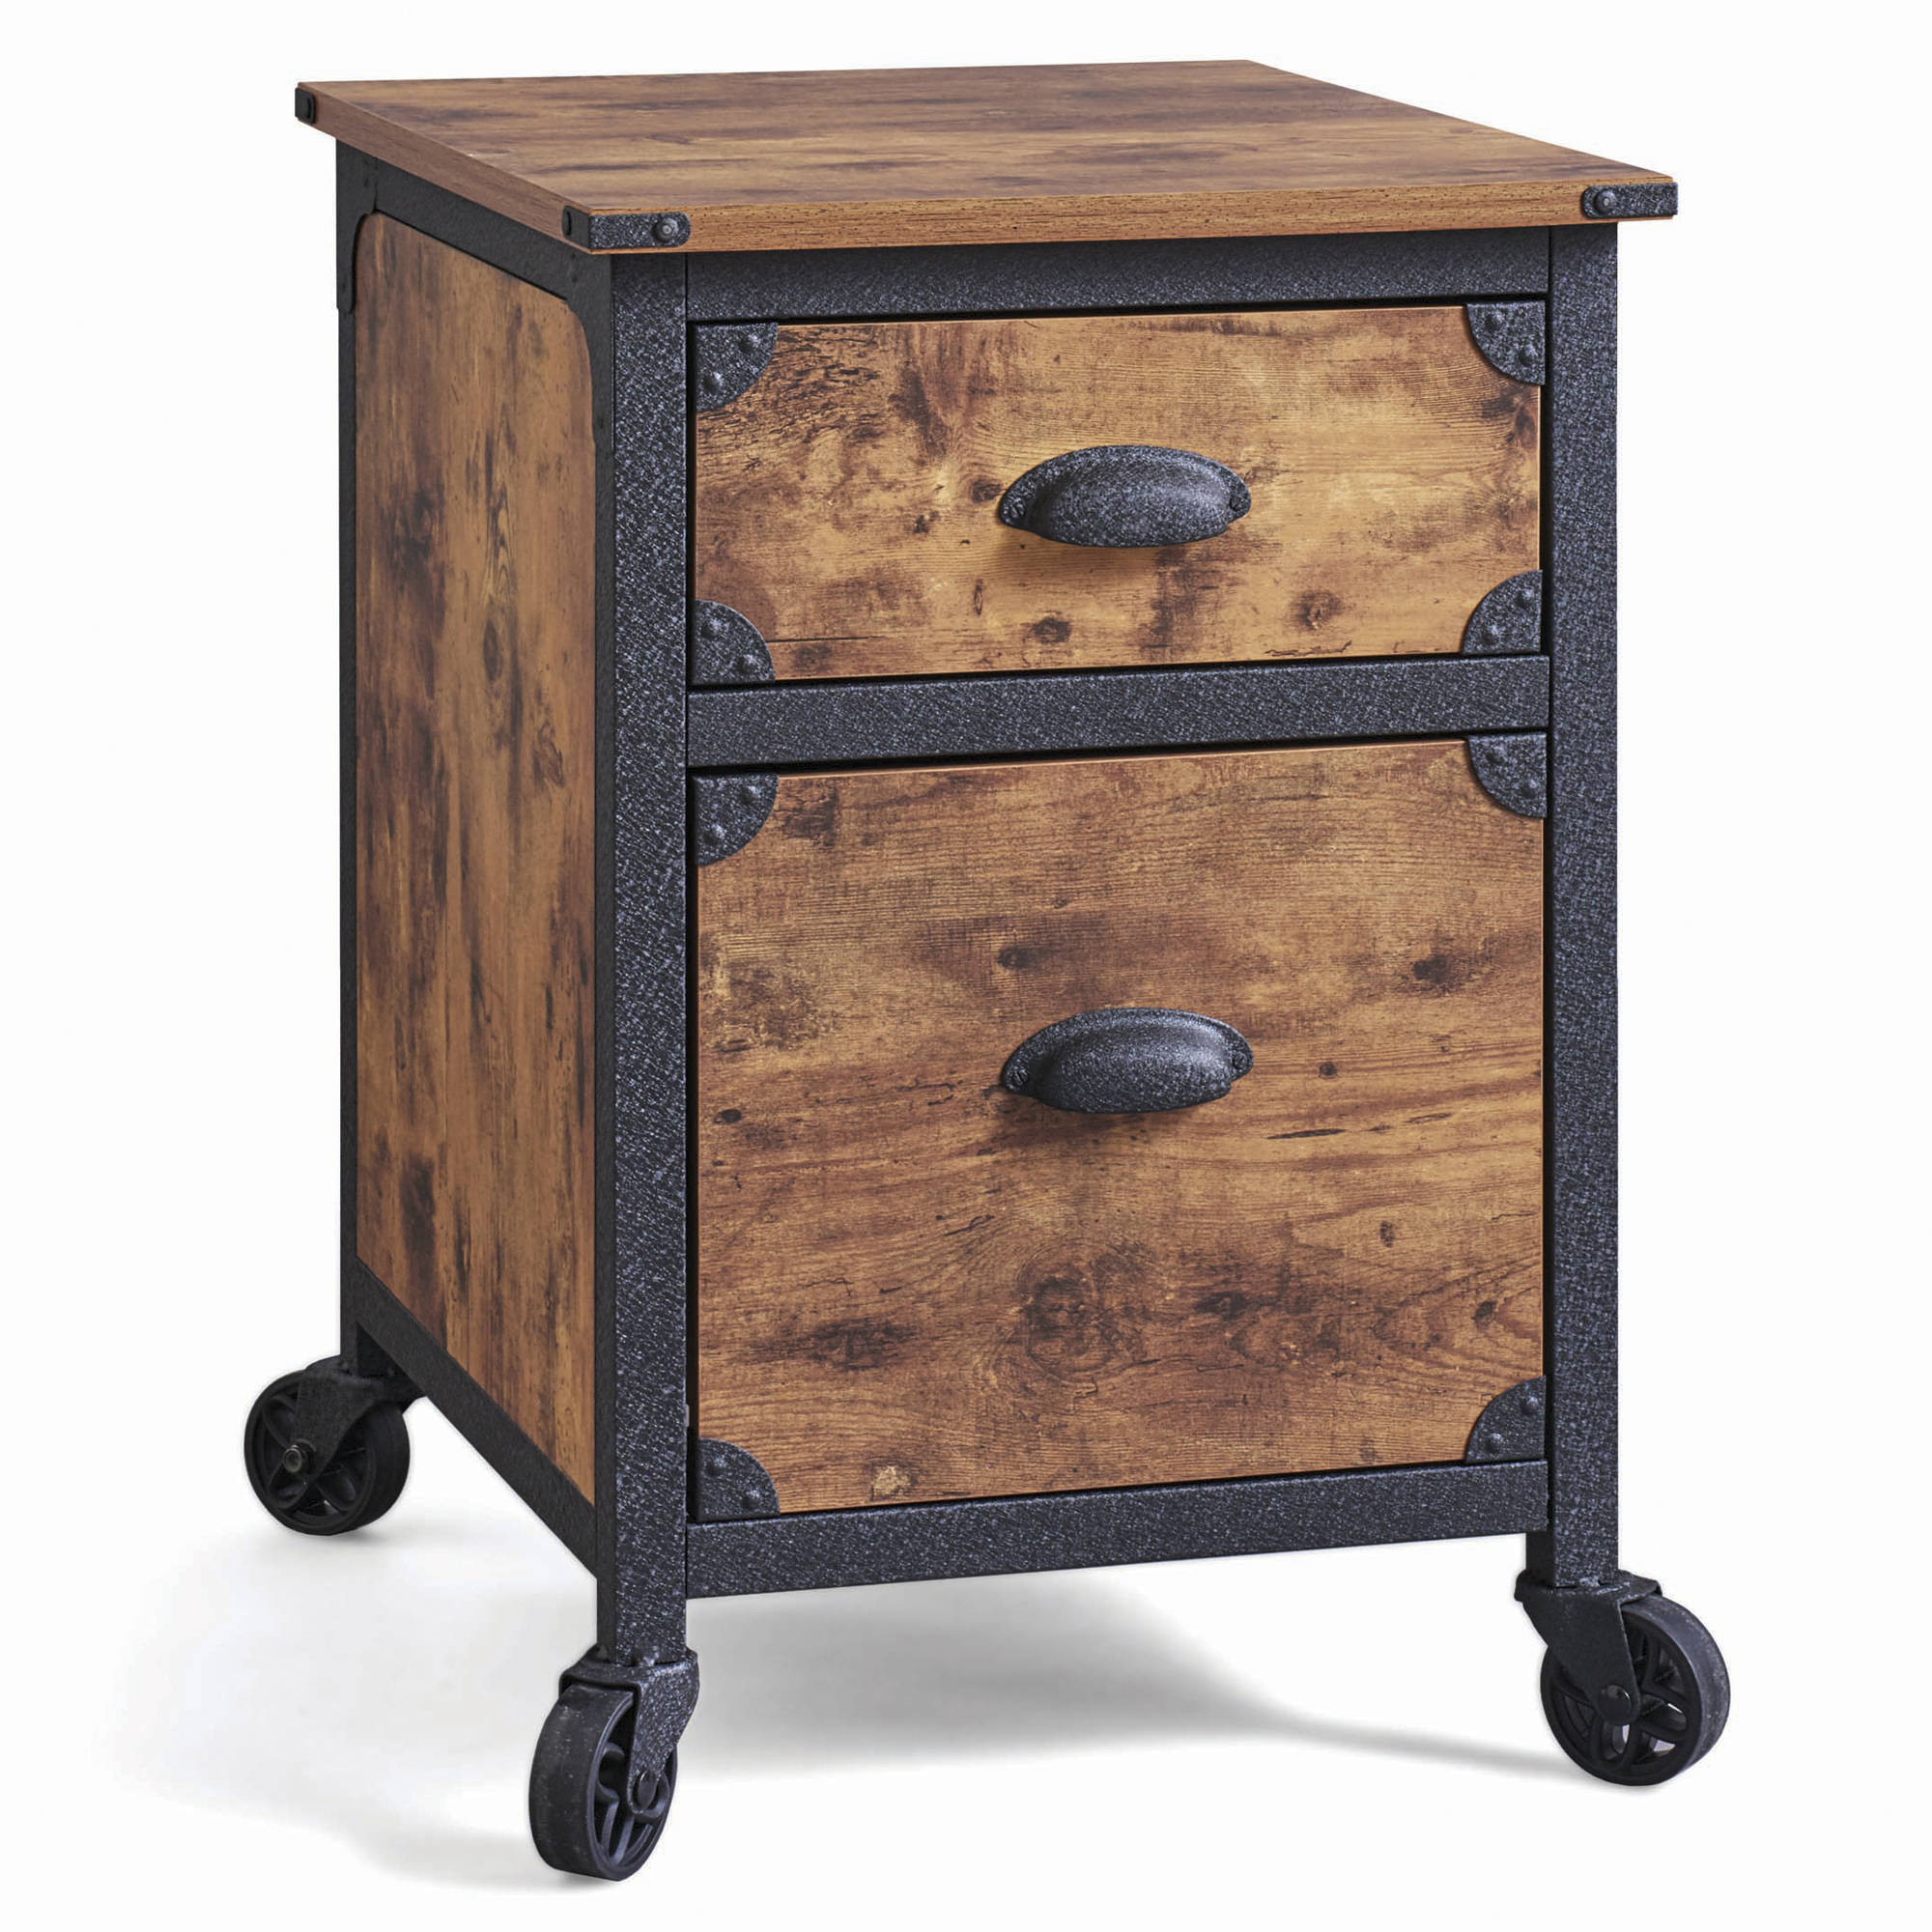 better homes gardens drawer rustic country file cabinet and accent table gray weathered pine finish coffee decor ideas high end garden furniture clearance pool diy modern nautical